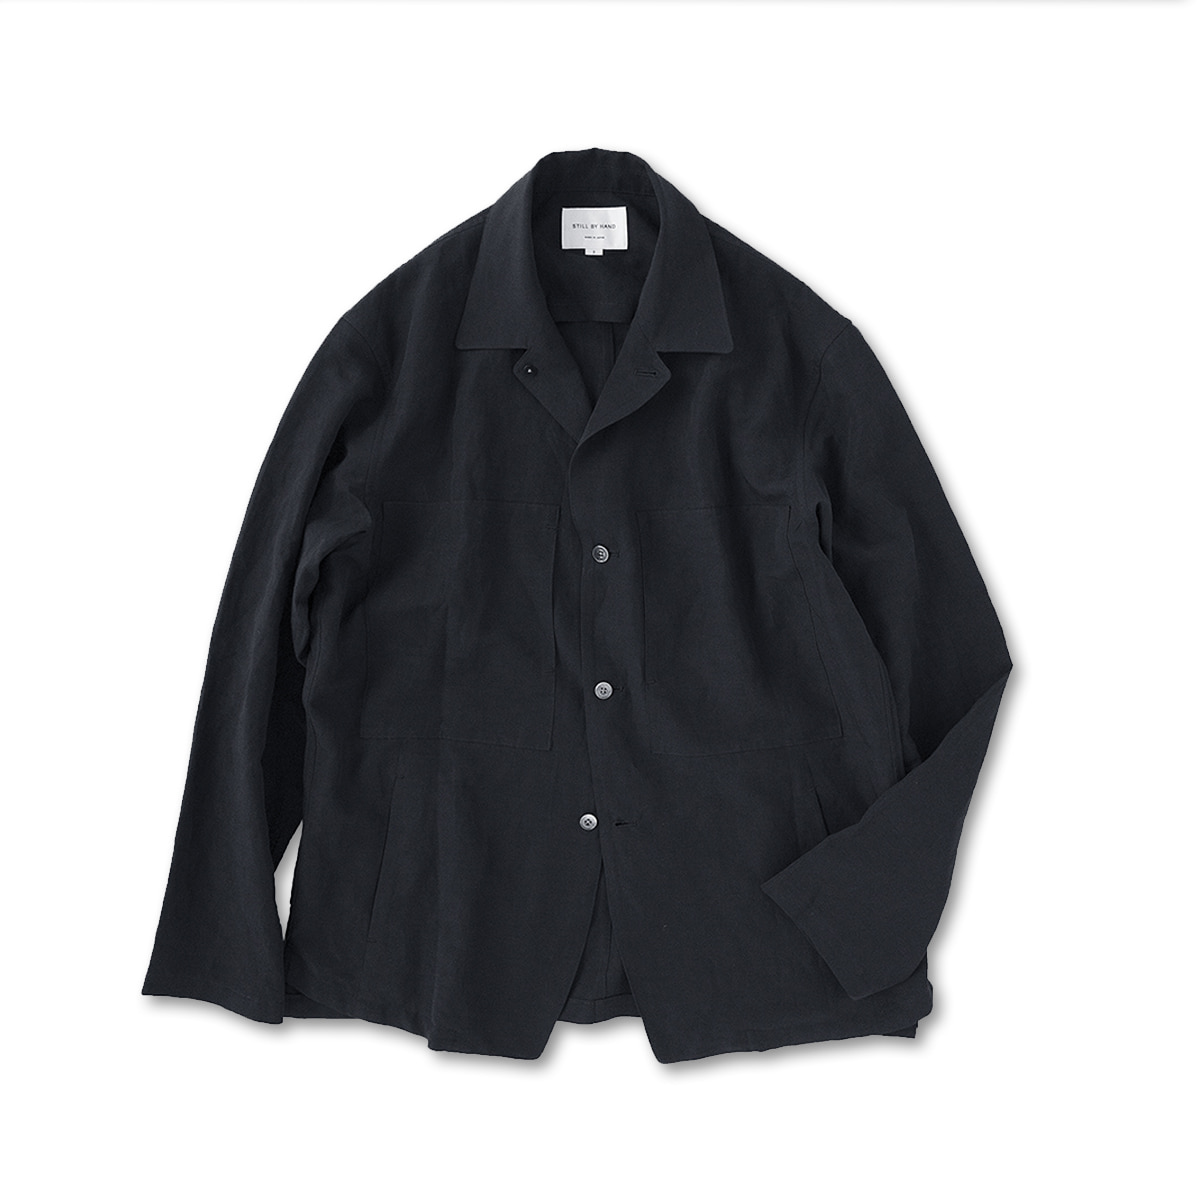 [STILL BY HAND] JK03201OS - LARGE POCKET SHIRT JACKET 'BLACK'